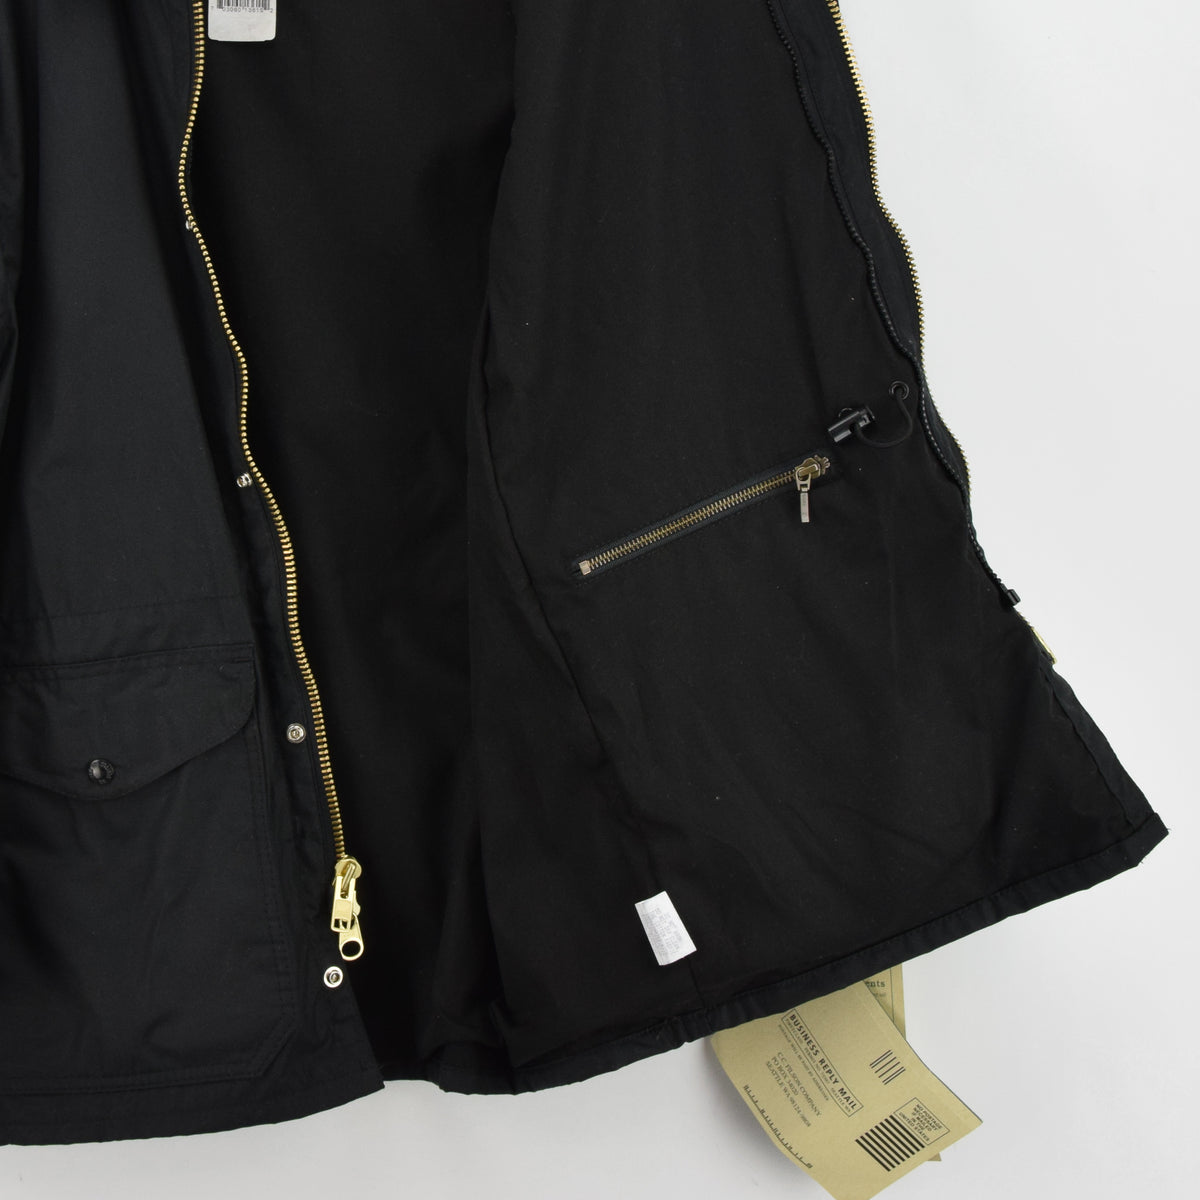 Filson Cover Cloth Mile Marker Coat Black Wax Cotton Jacket Made in USA M internal pocket